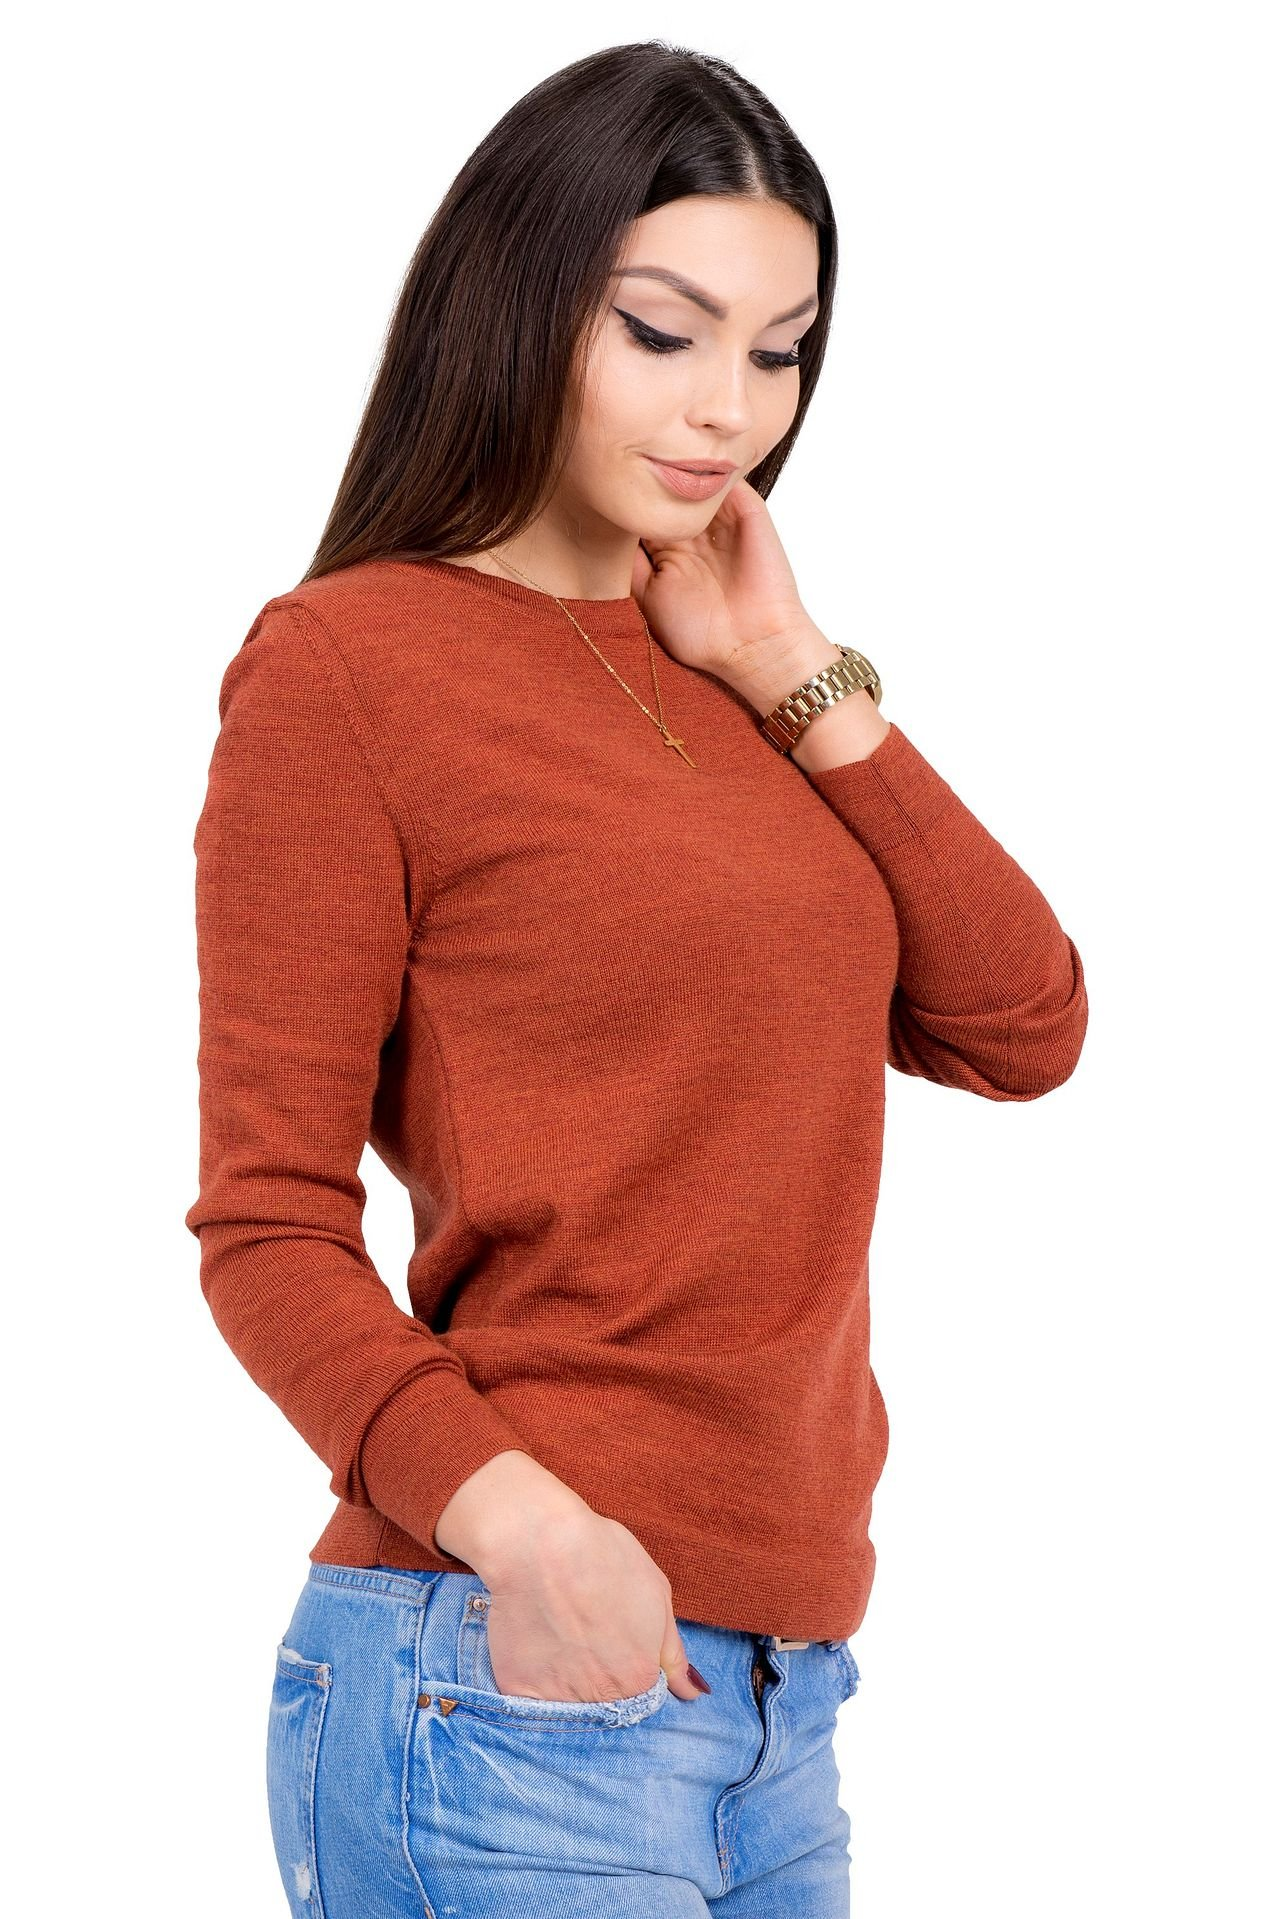 Women's Pure Merino Wool Classic Knit Top Lightweight Crew Neck Sweater Long Sleeve Pullover (X-Large, Orange) by KNITTONS (Image #2)